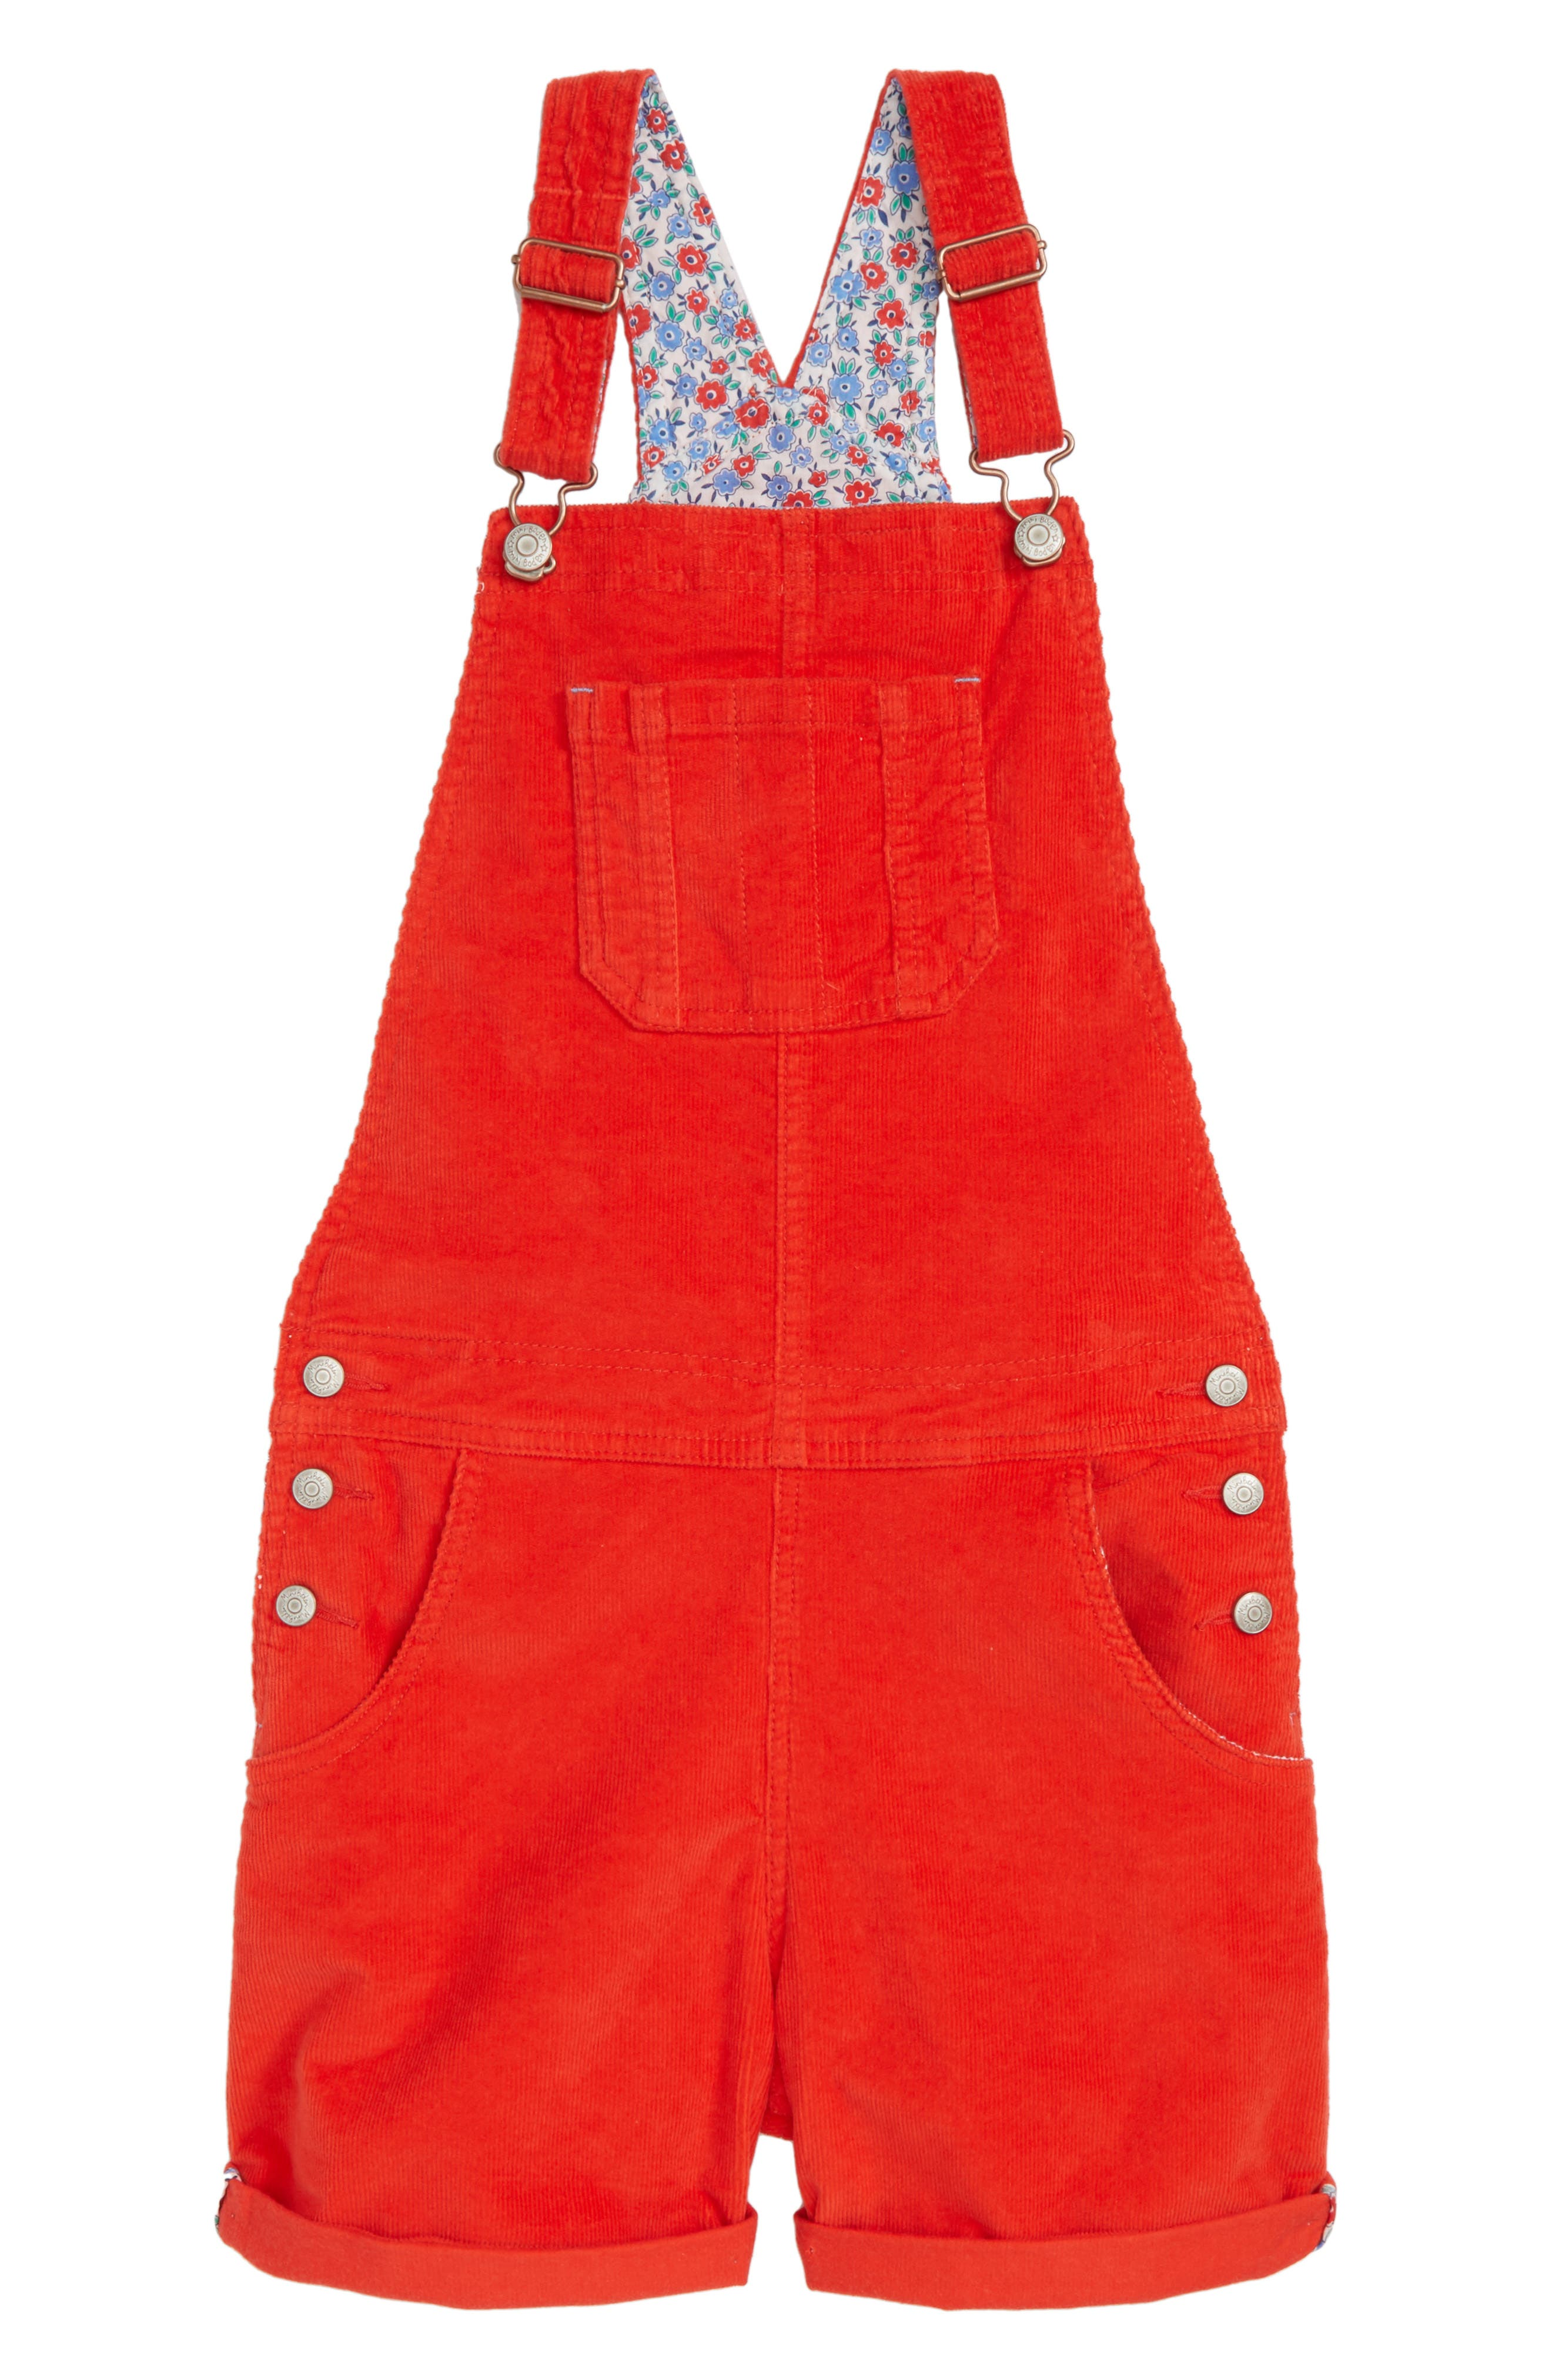 Short Corduroy Overalls,                         Main,                         color, Rosehip Red